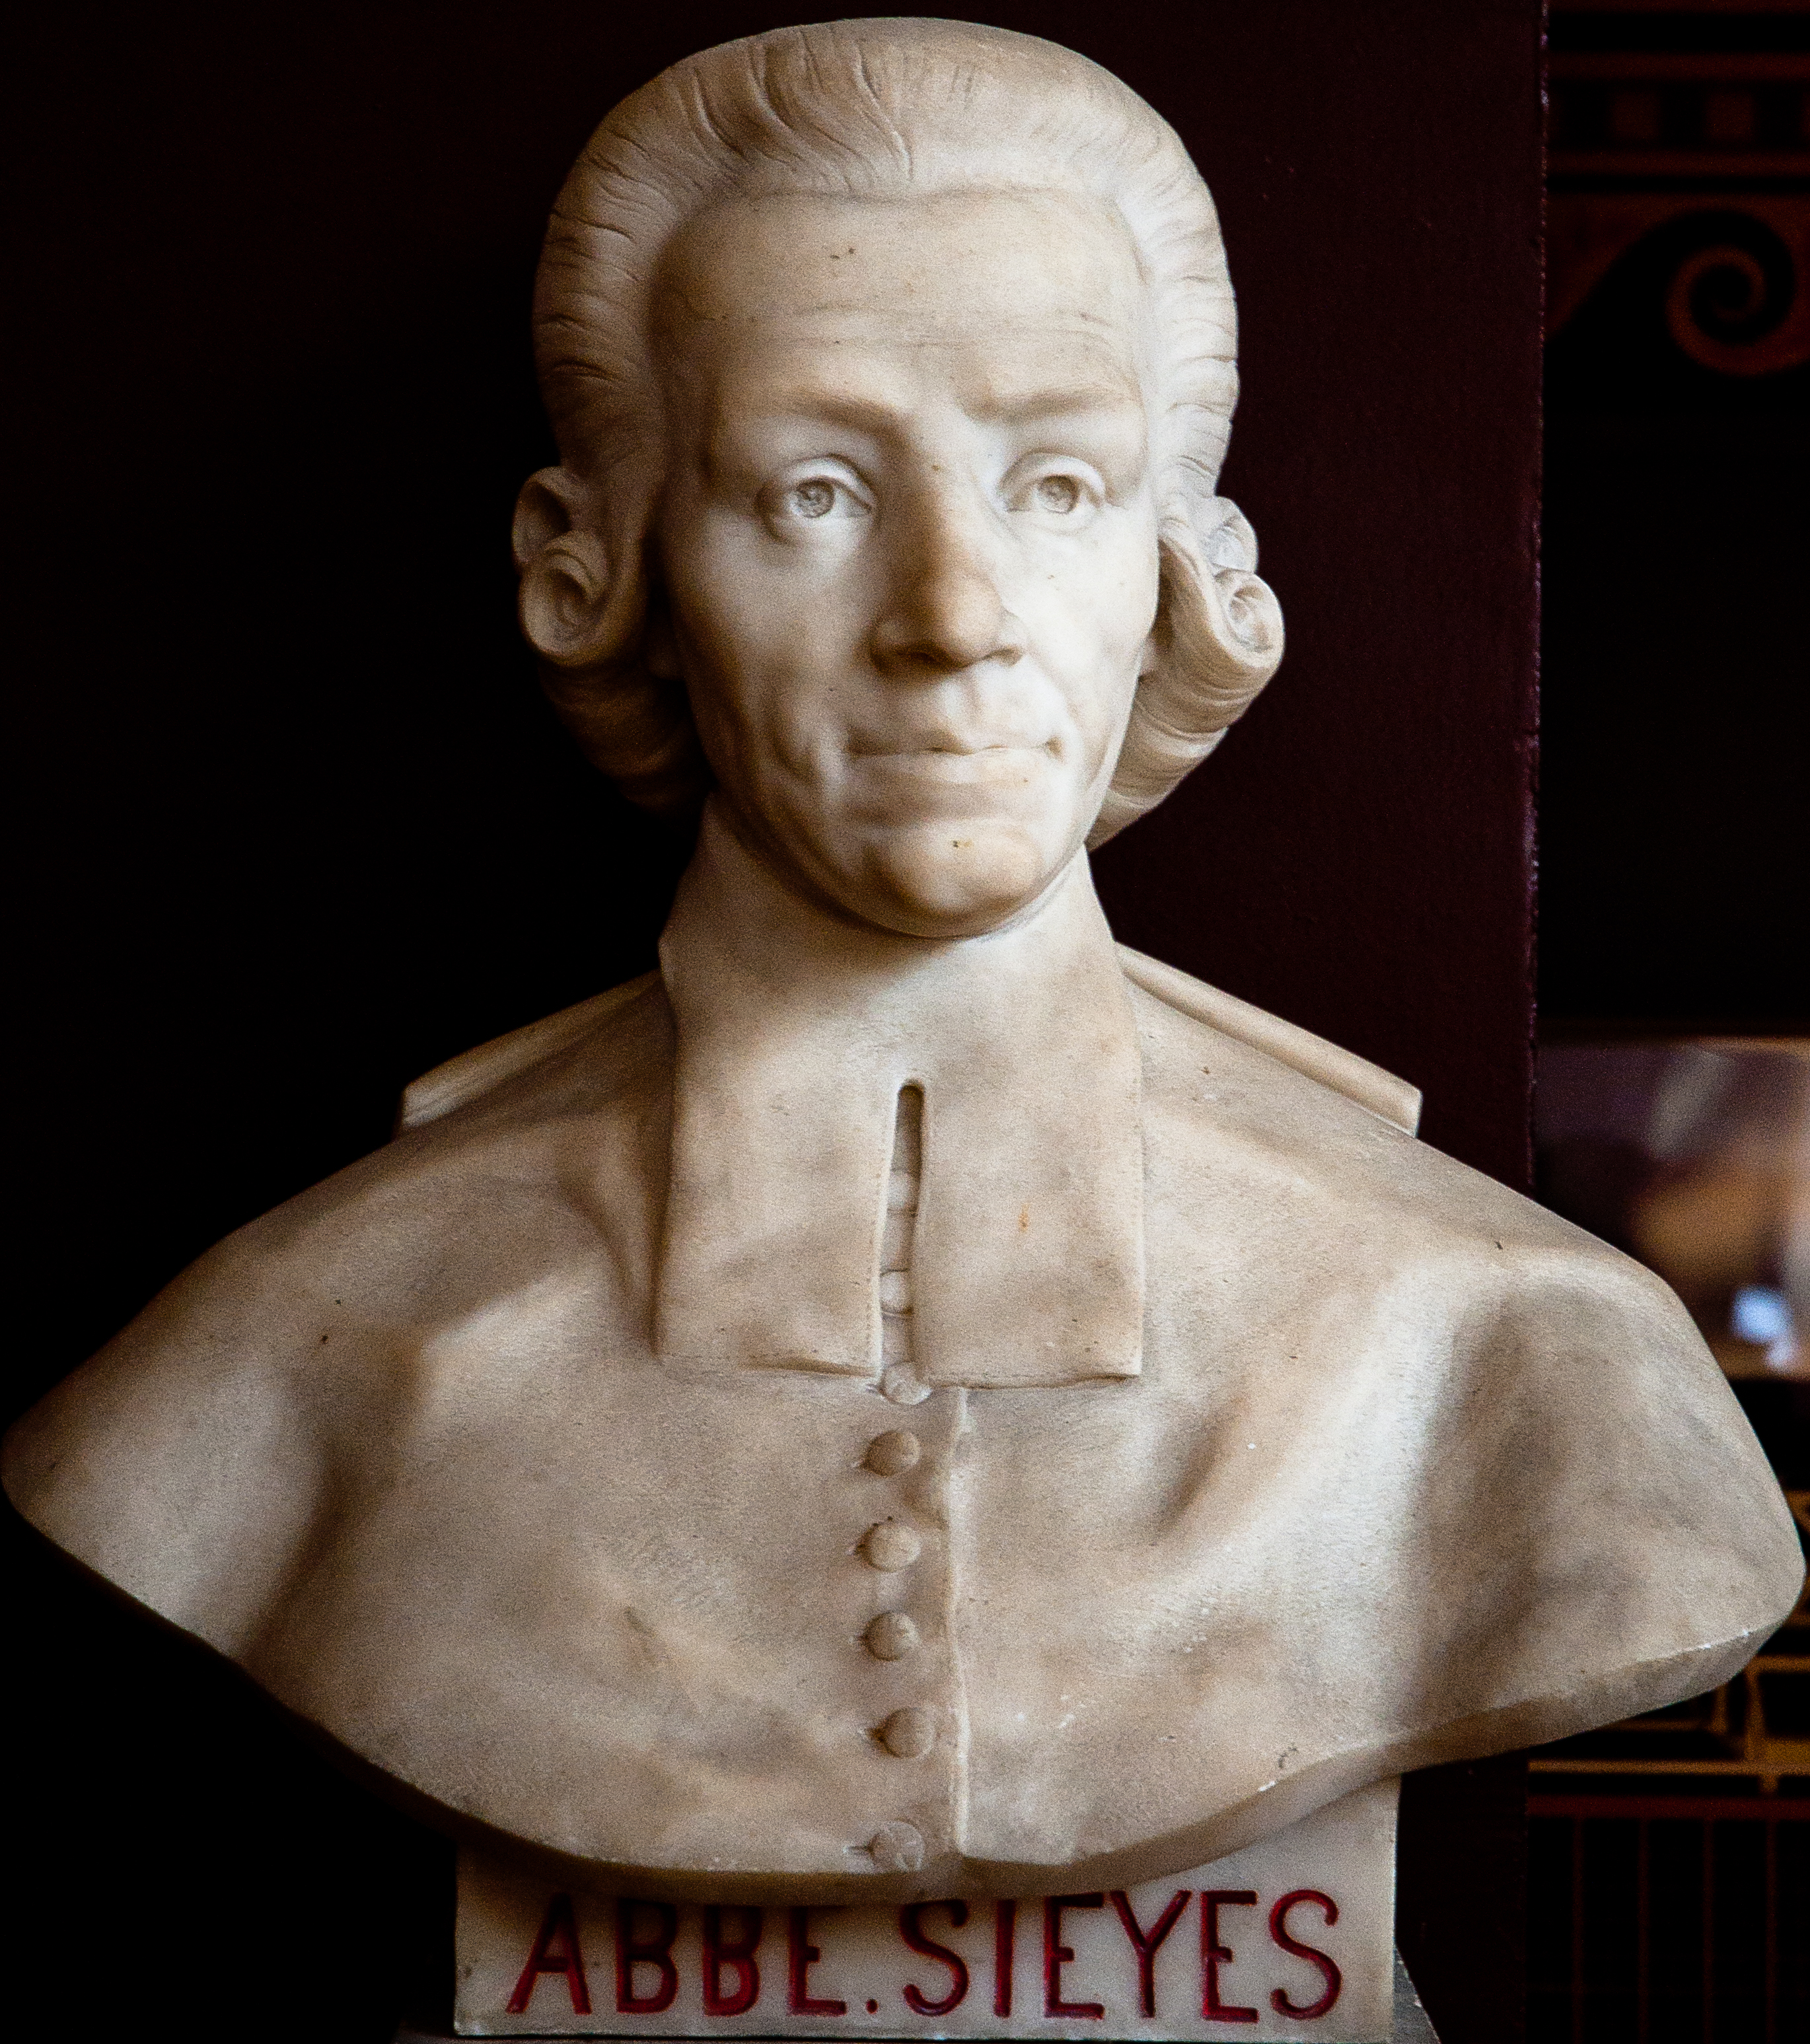 the part emmanuel joseph sieyes played in the early french revolution